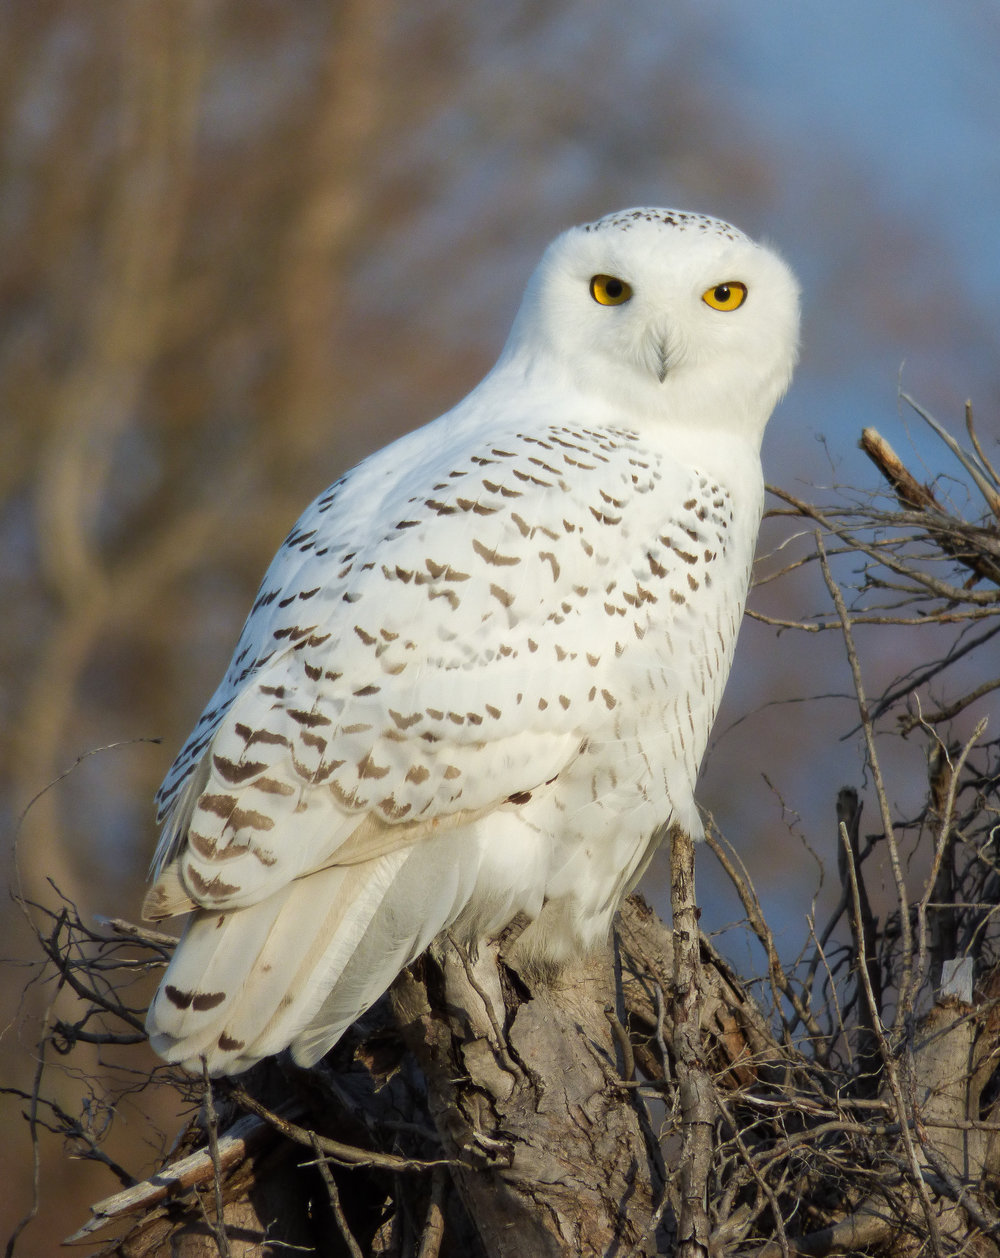 Harfang des neiges, Bubo scandiacus.